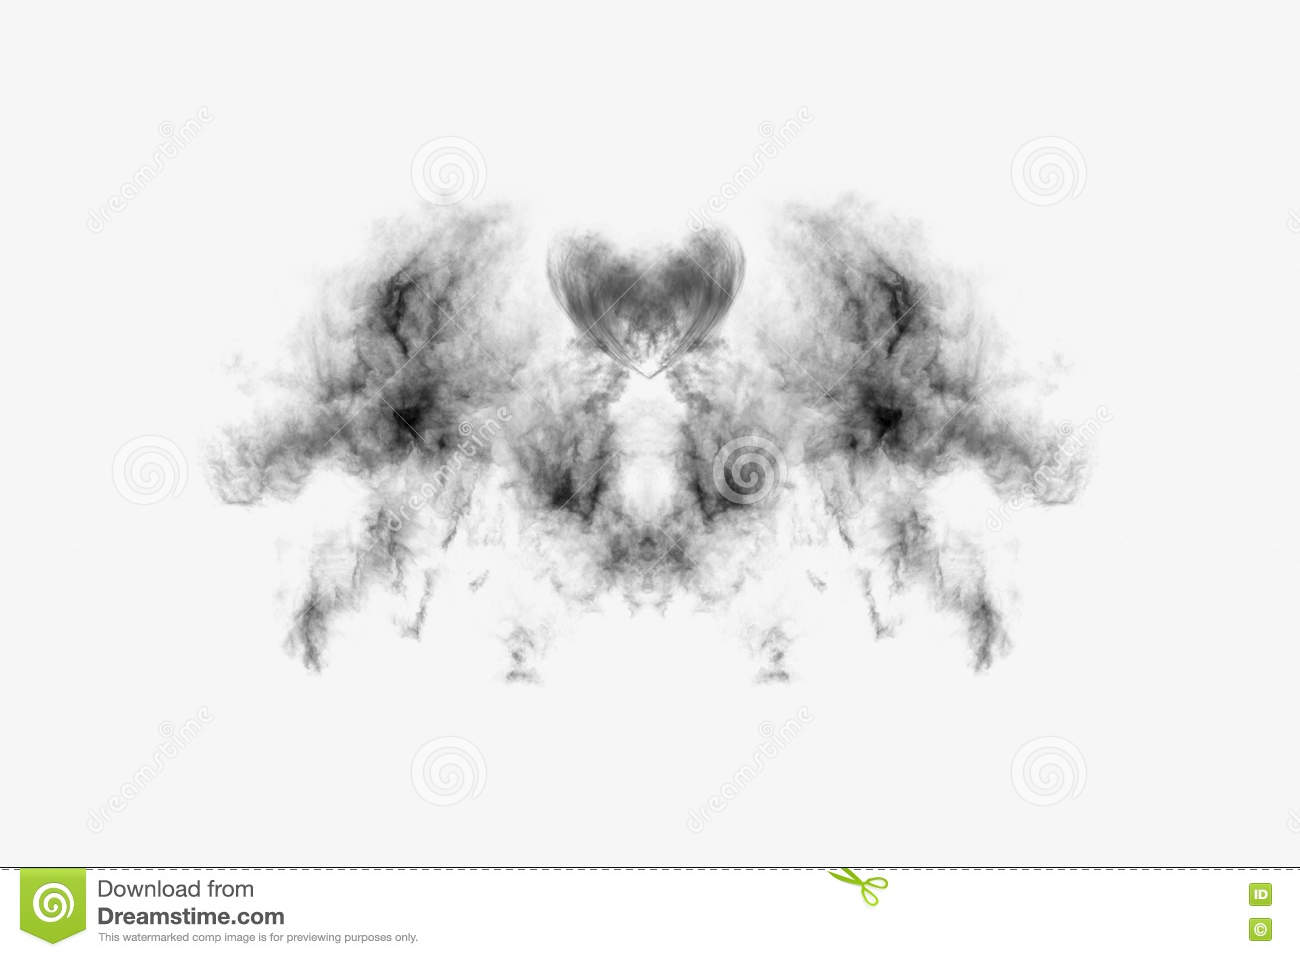 Download Textured Smoke,Abstract Black,isolated On White Background Stock Photo - Image of form, rain: 73787600